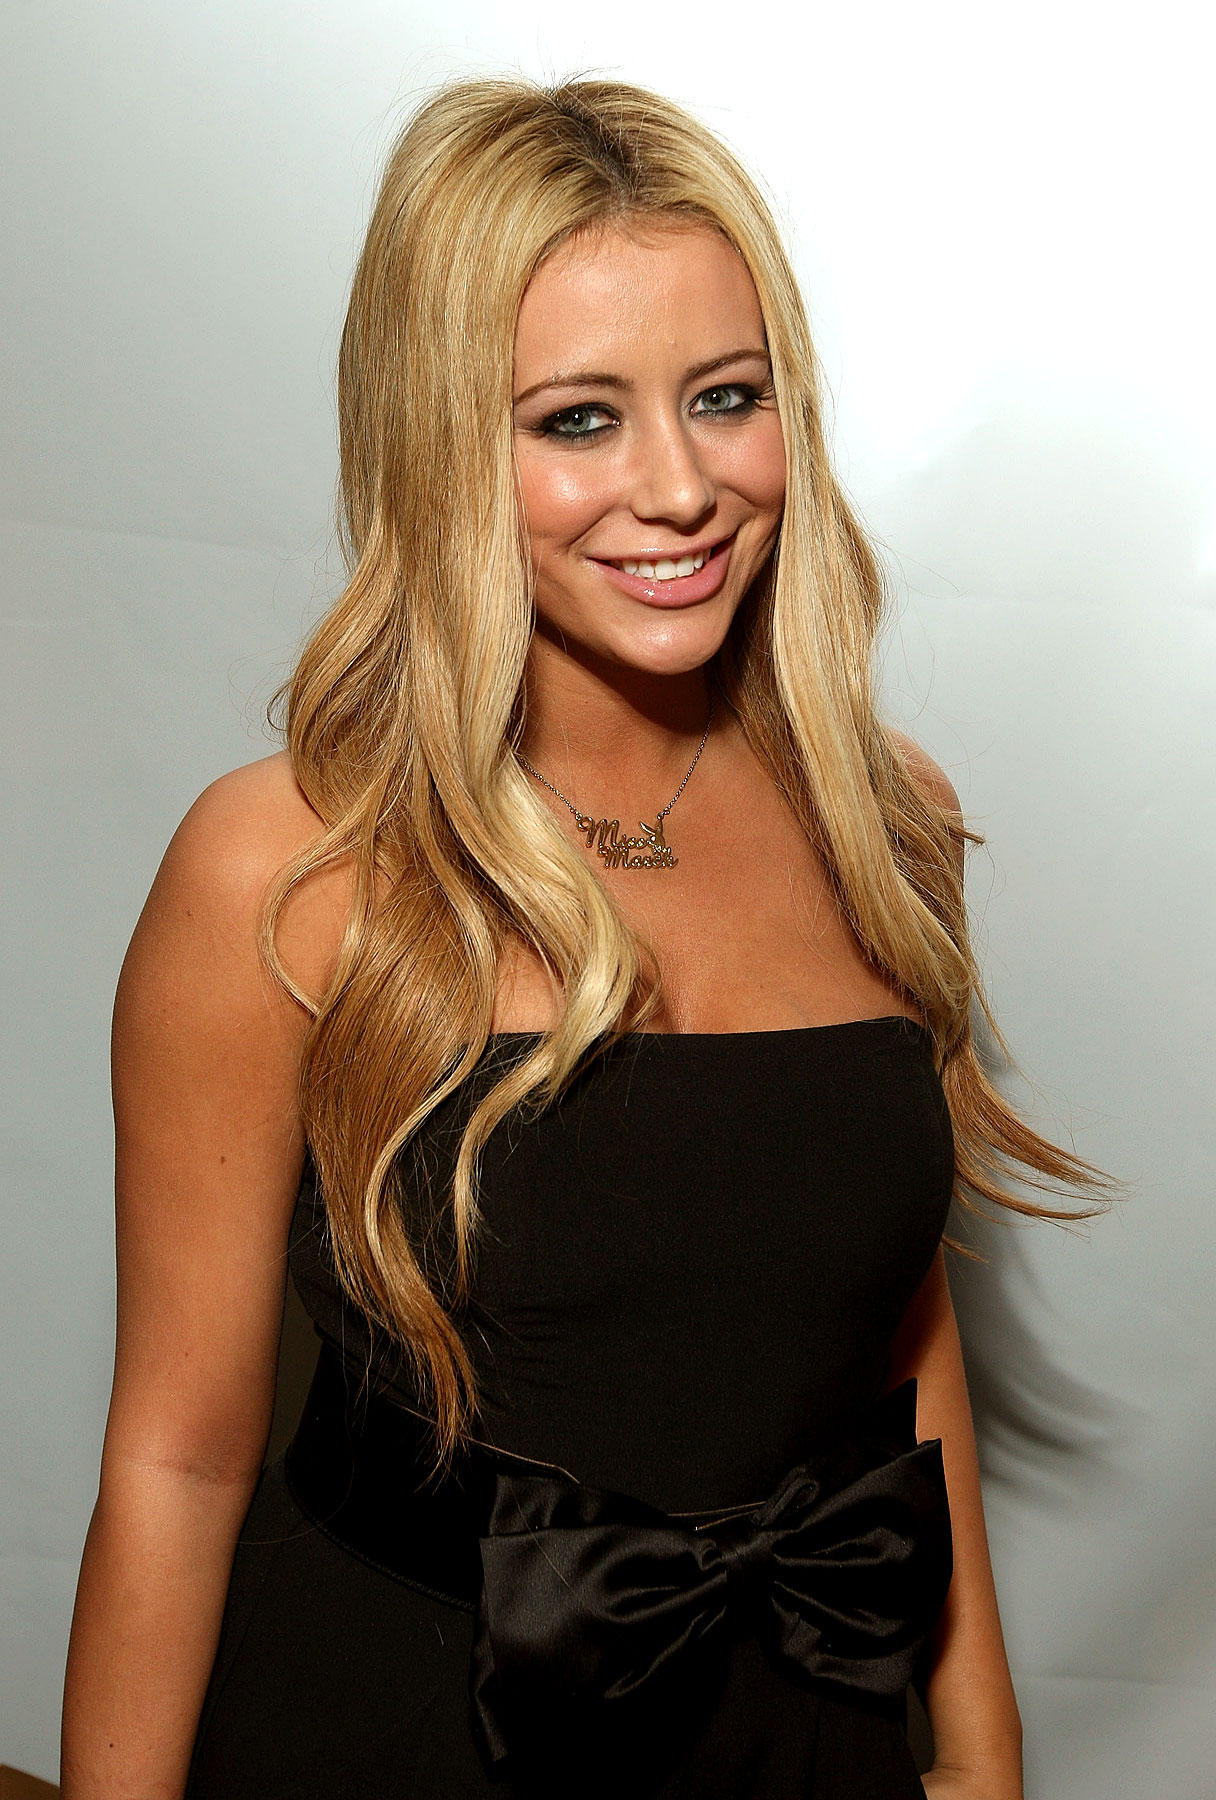 Aubrey O'Day: Hottie for the Defense?